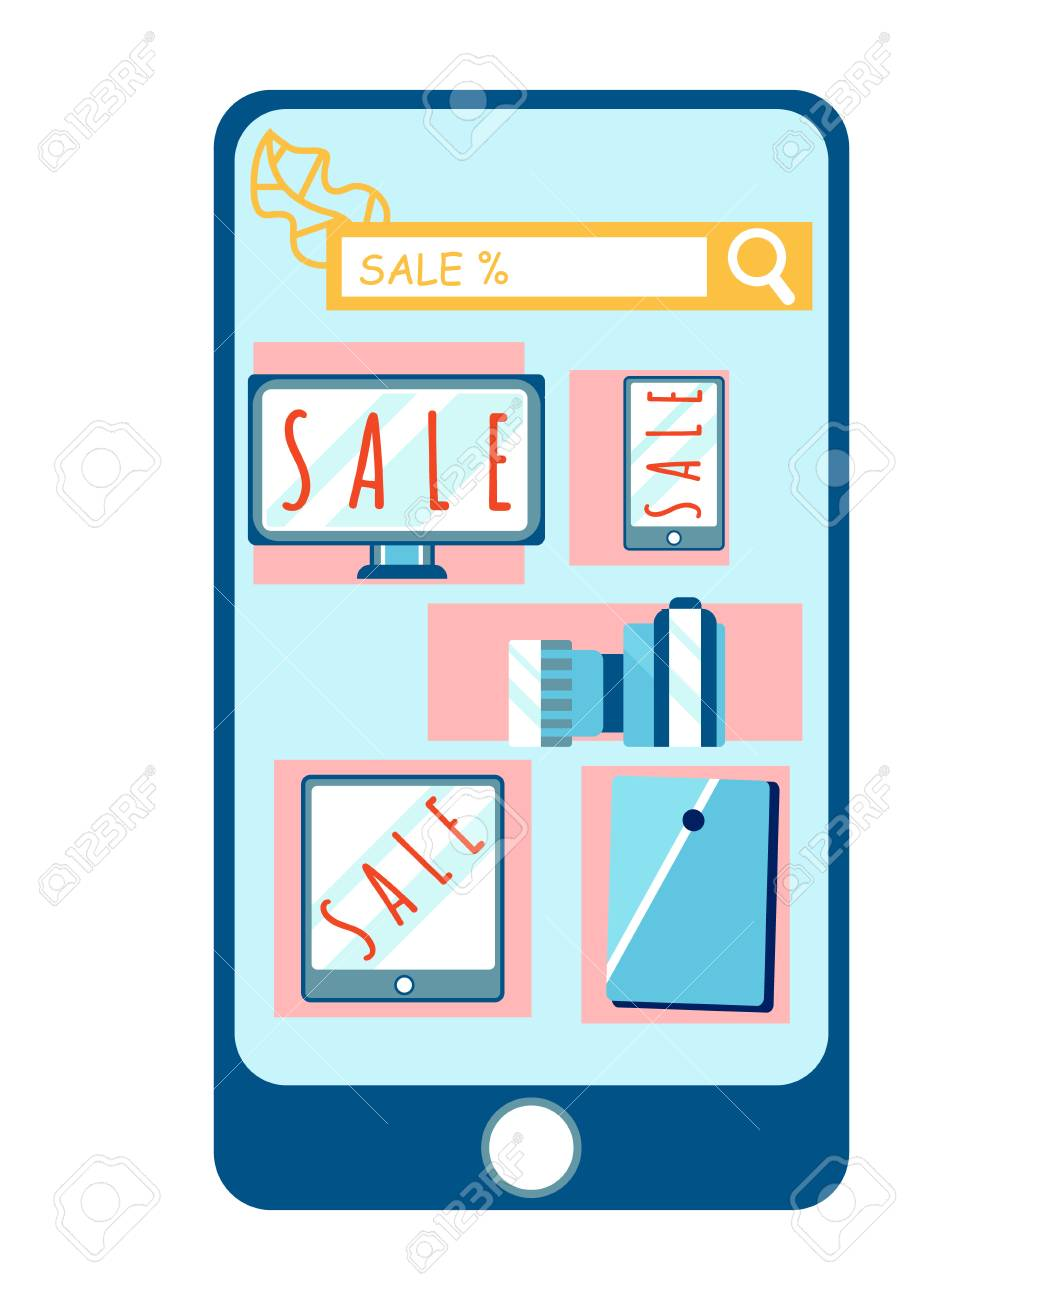 Electronics Internet Store App Vector Illustration. Ordering Gadget Online. Beneficial ECommerce. Big Clearance Sale. Devices Special Offer. Profitable Marketing. Computer, Tablet, TV Purchasing - 121209672